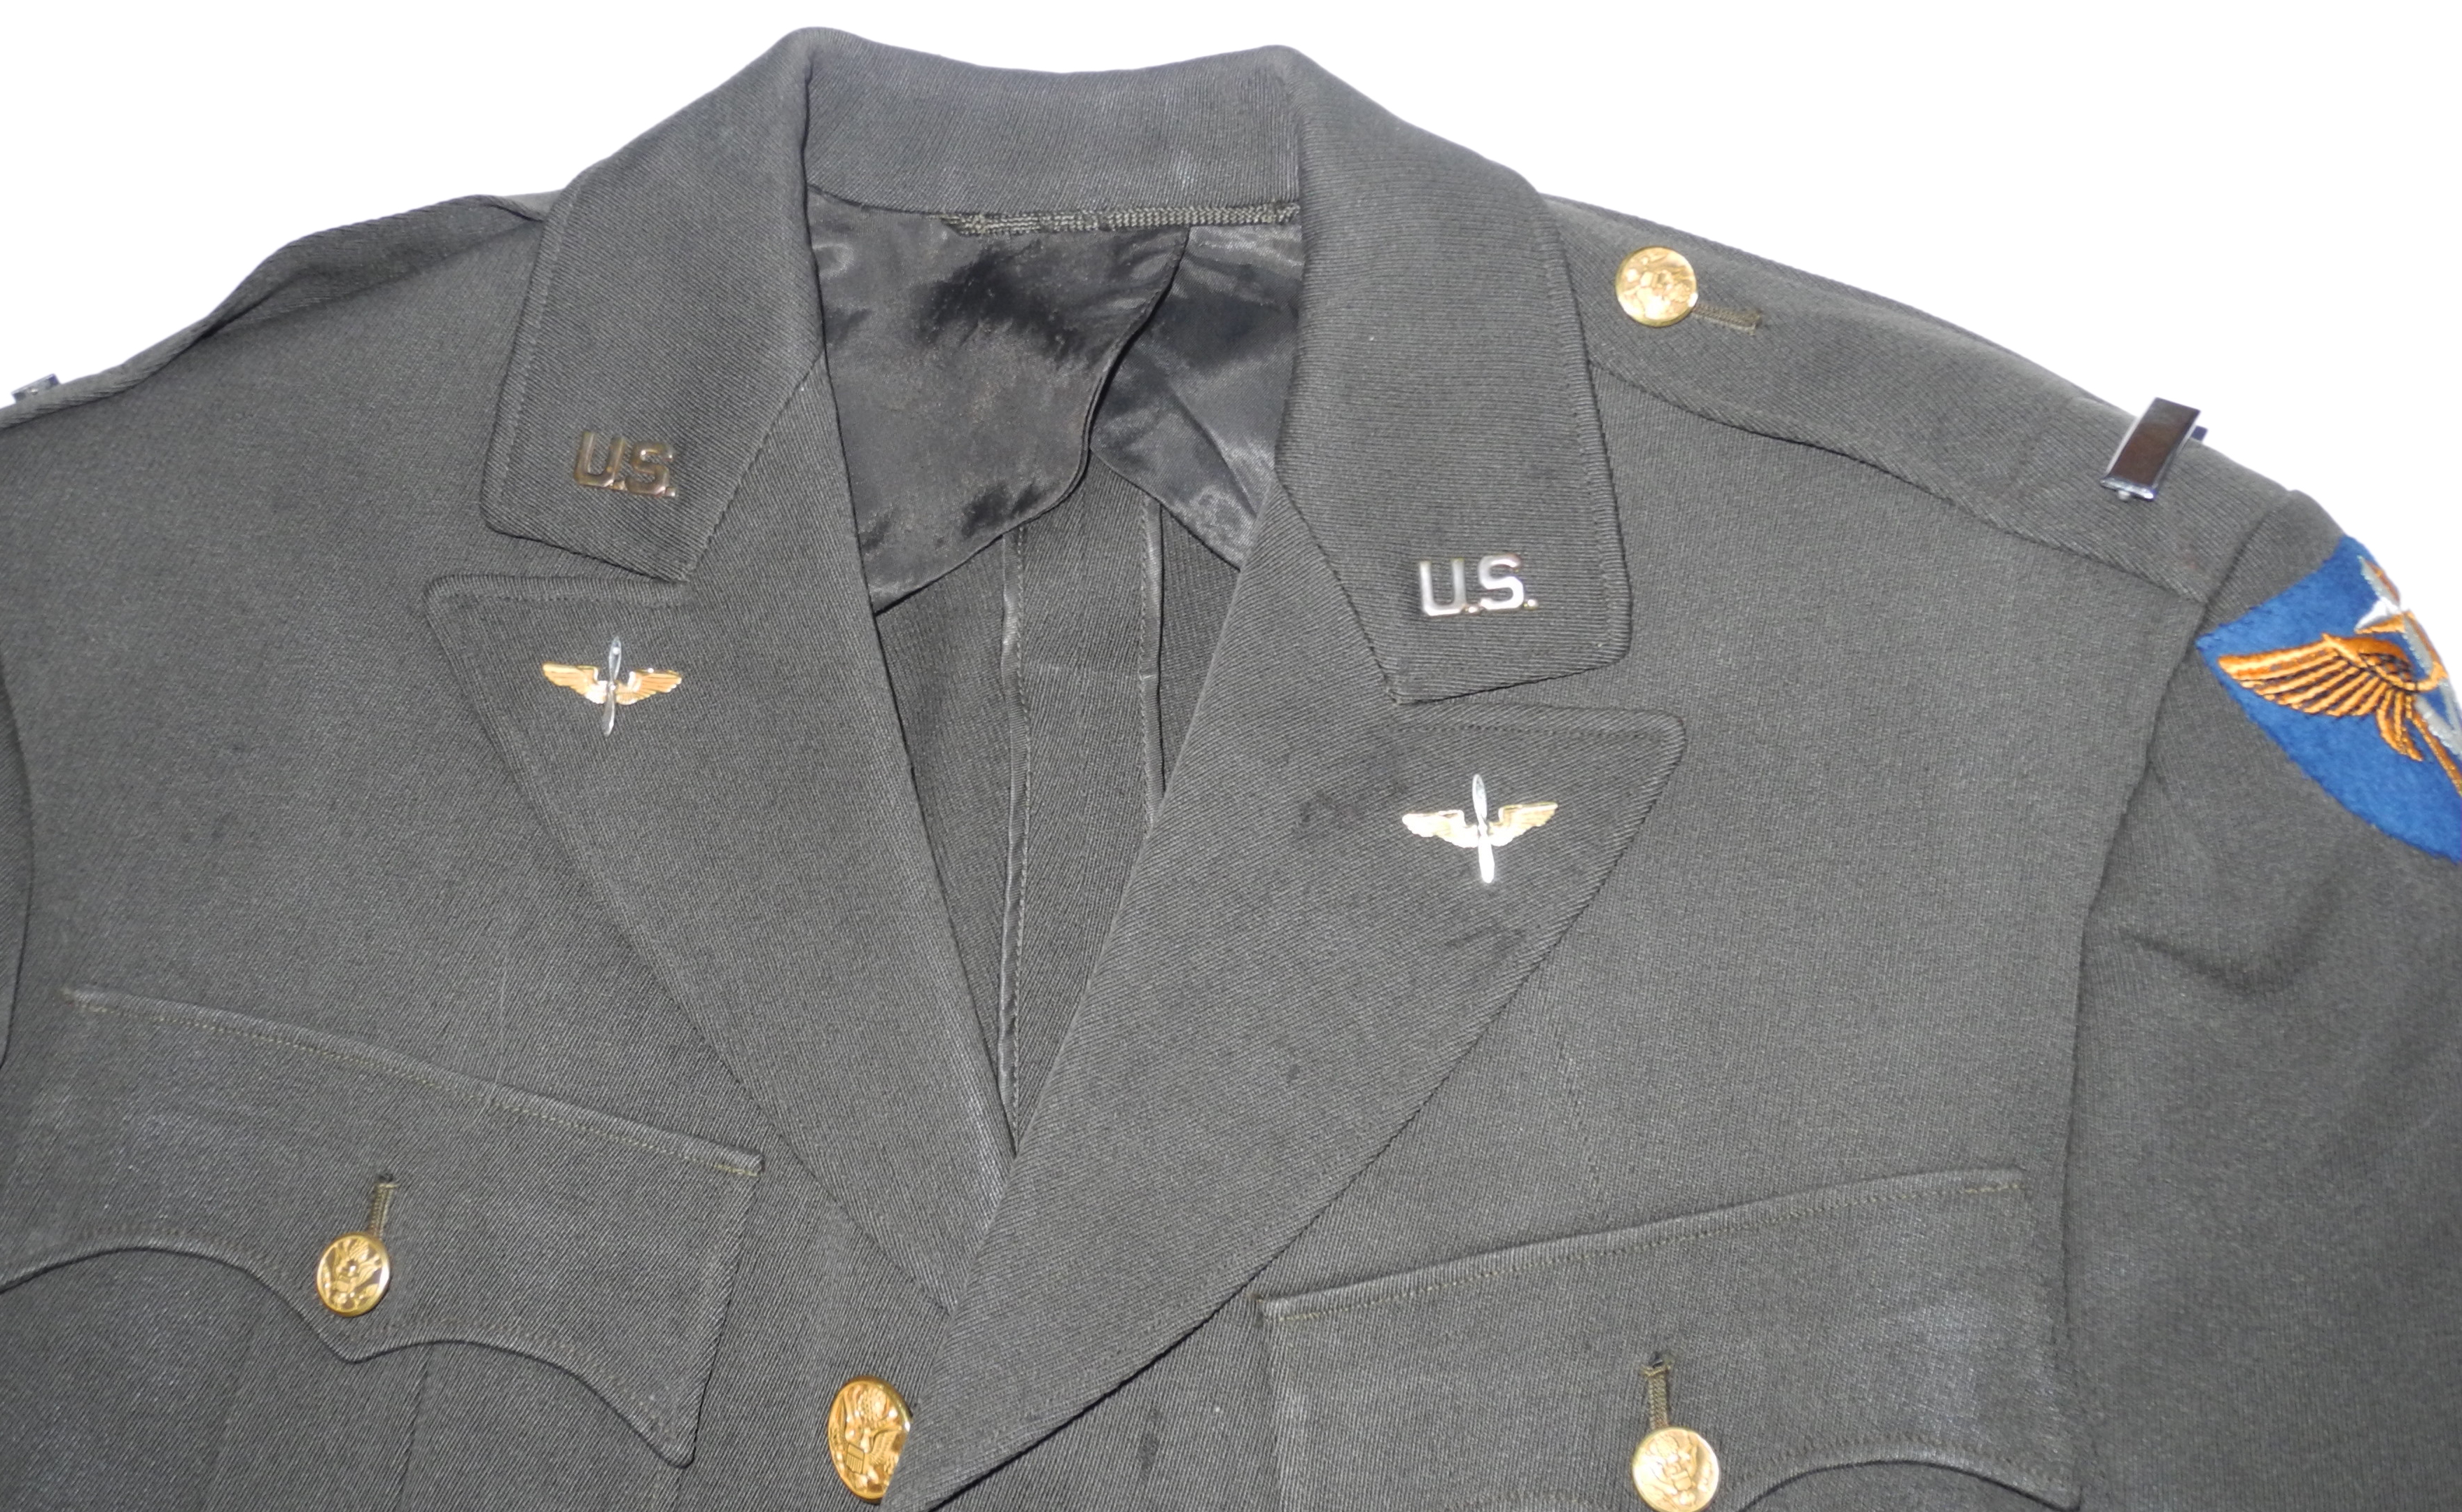 AAF Officer's tunic with superb XII Tactical Air Force Command patch